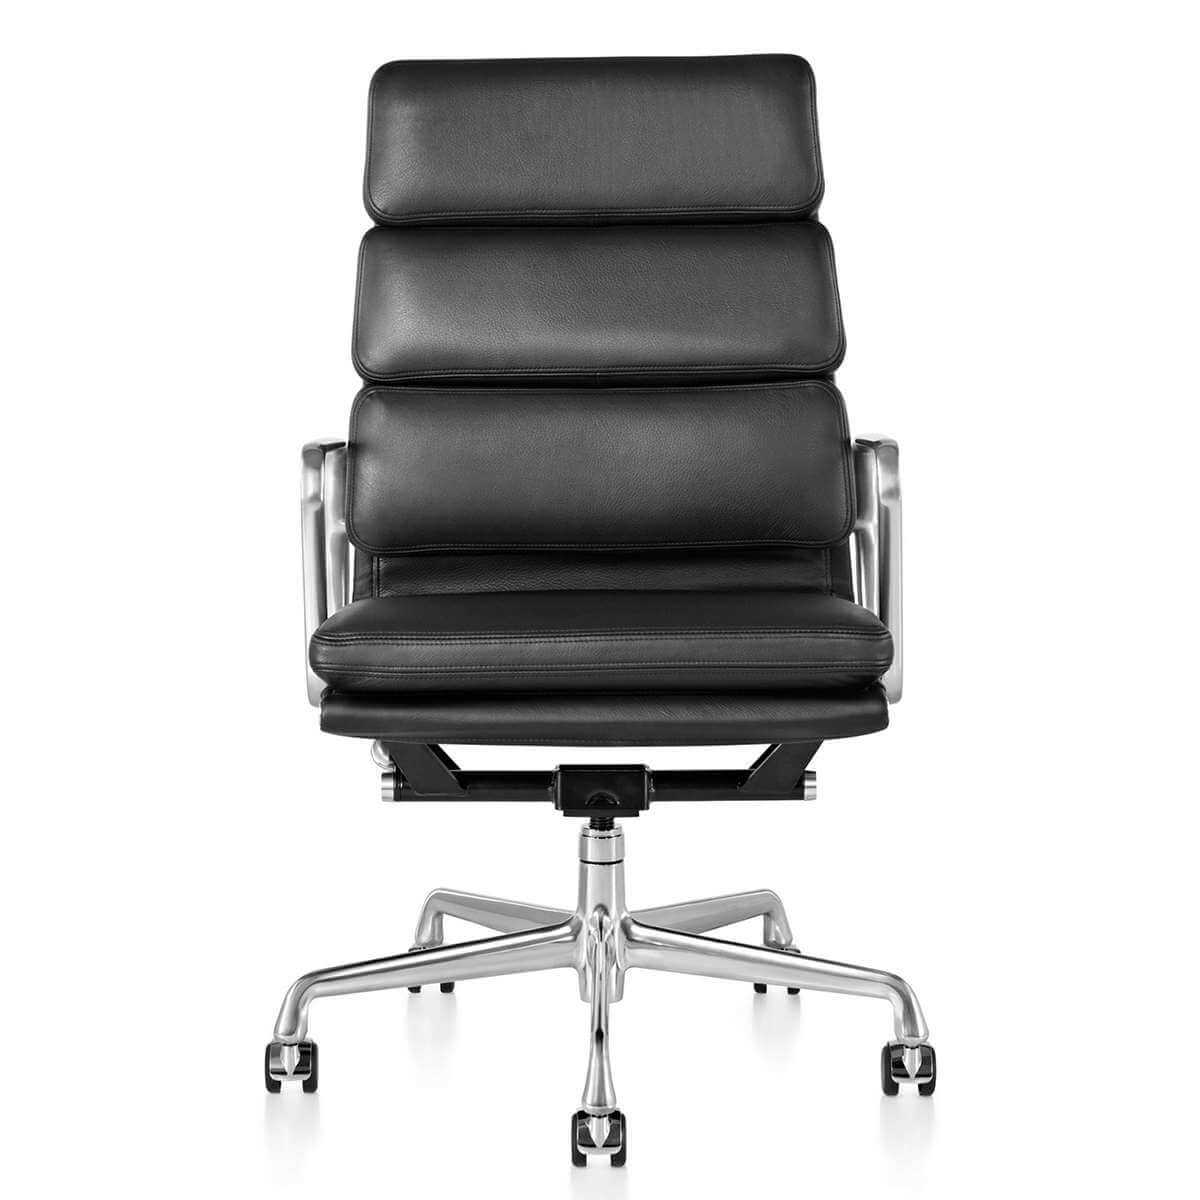 Ergonomic Office Chair - Eames 4